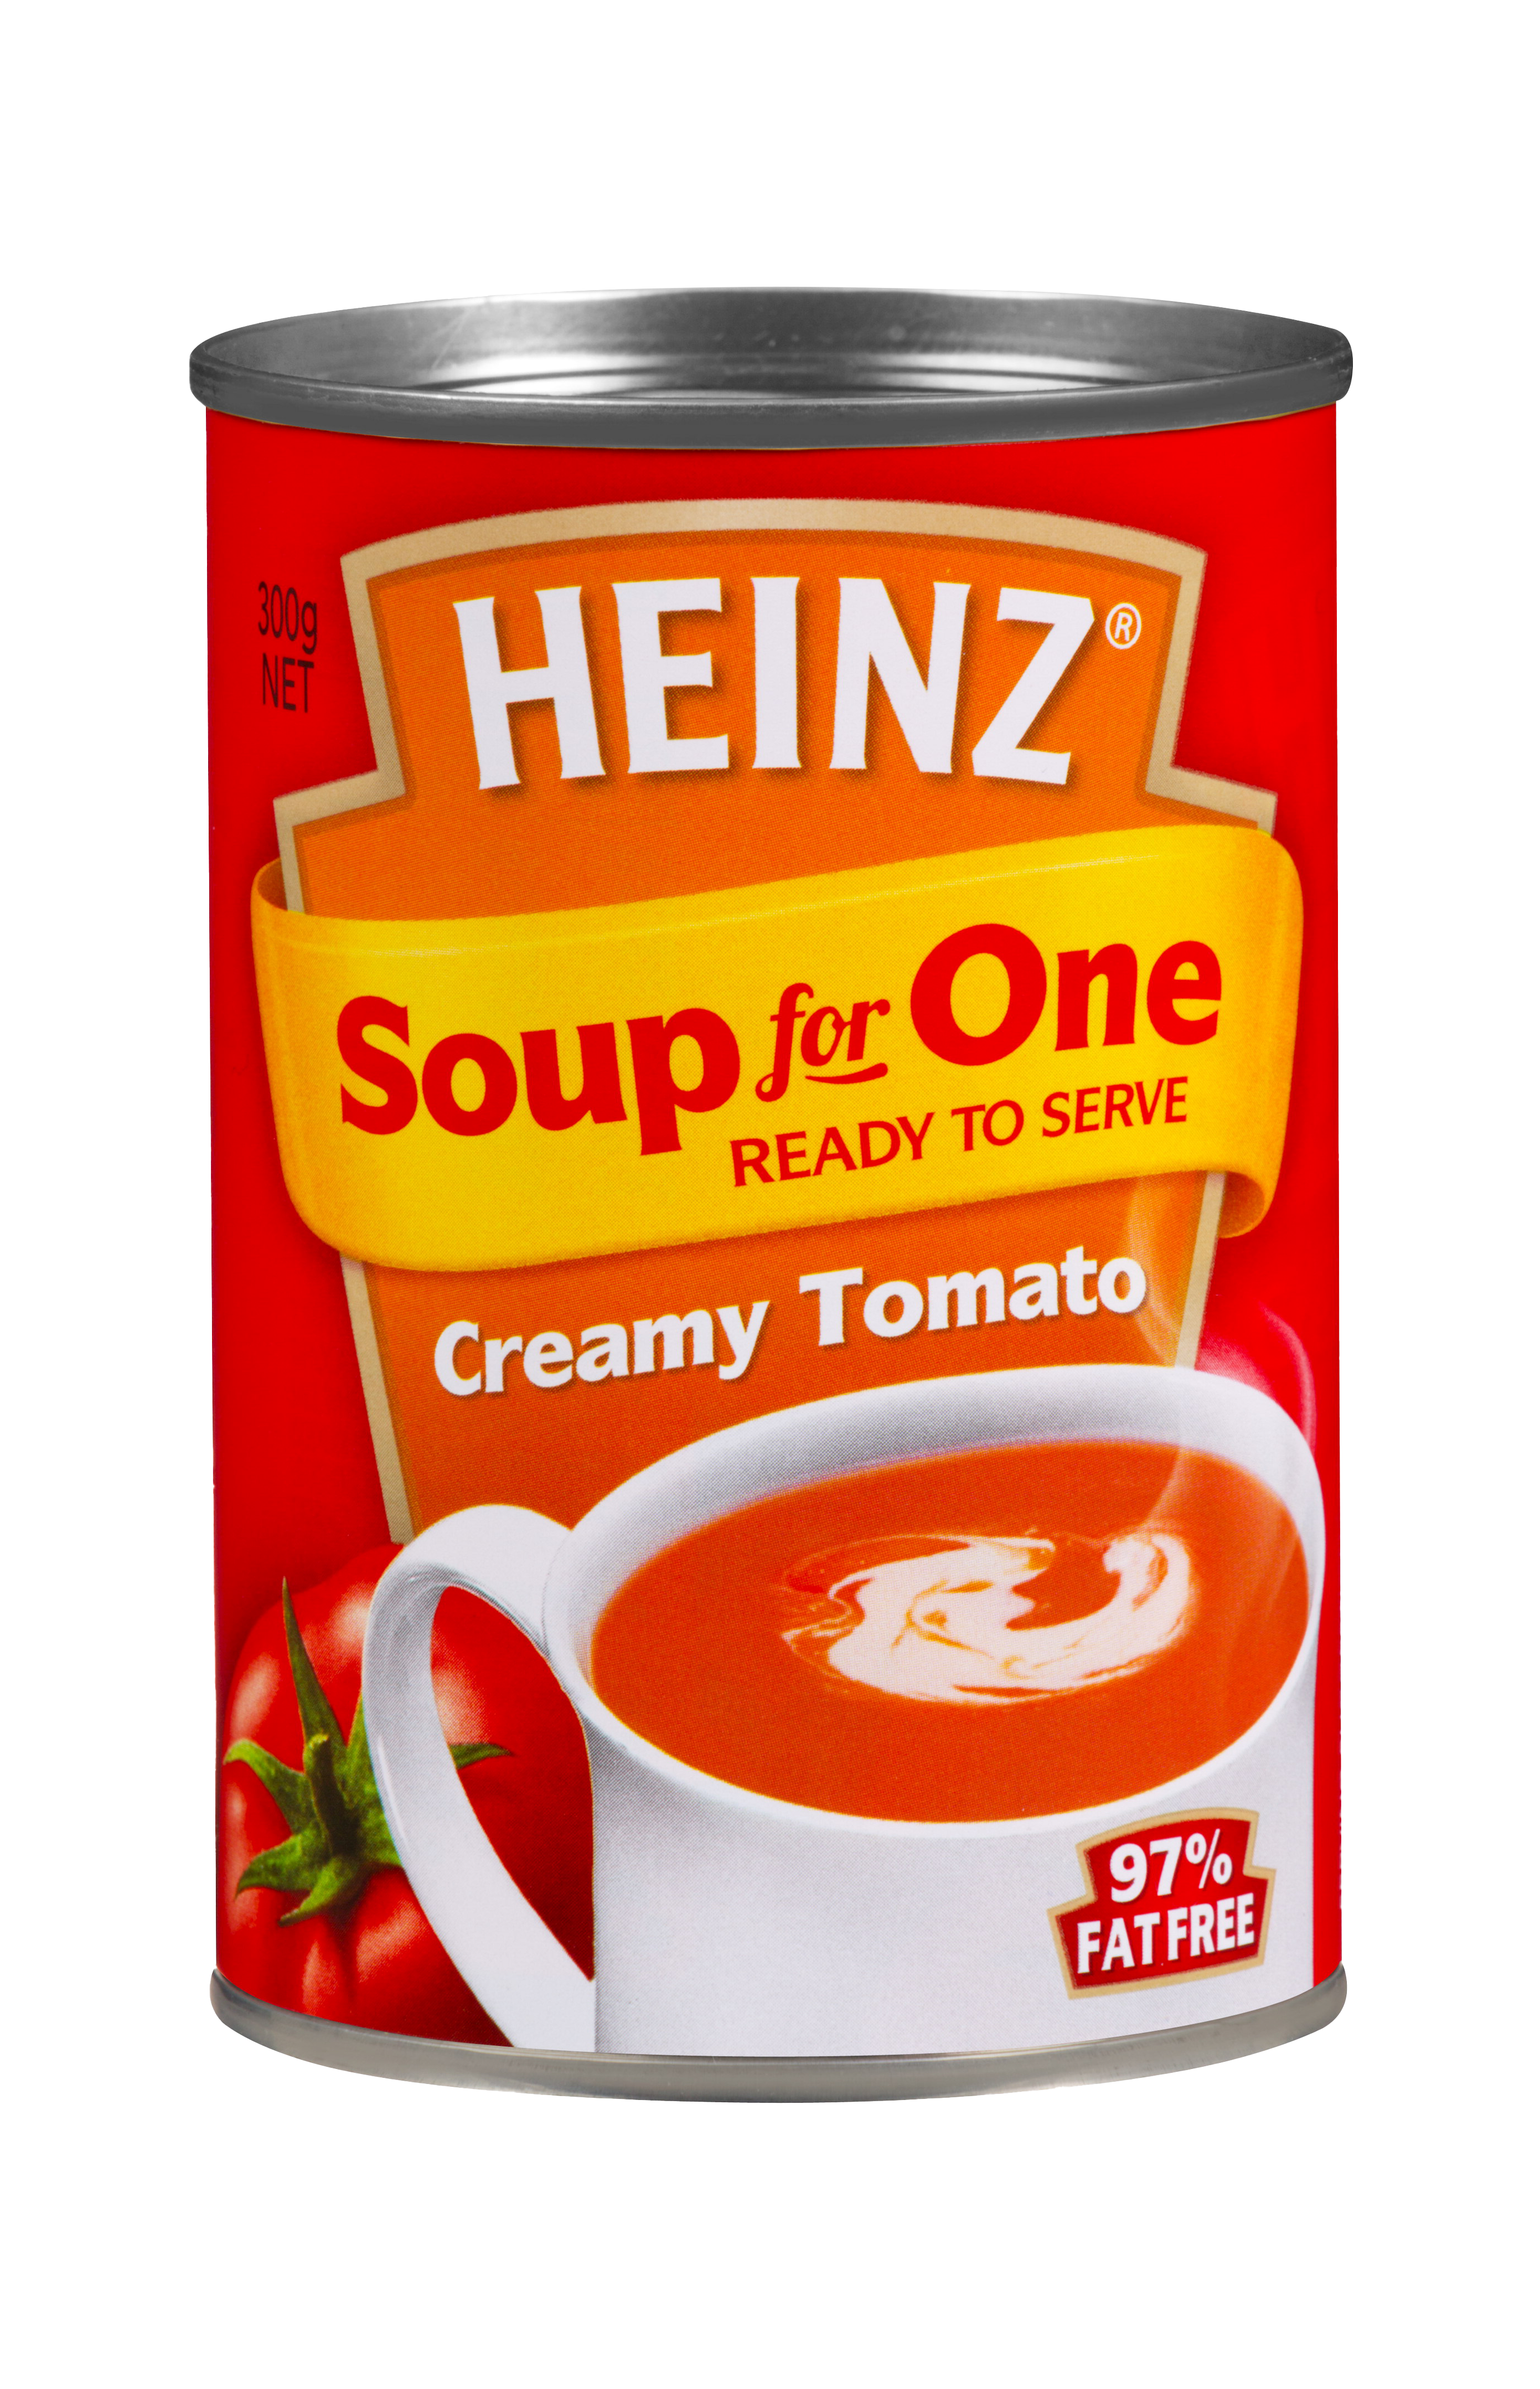 Heinz Big Red Tomato Soup for One 300g